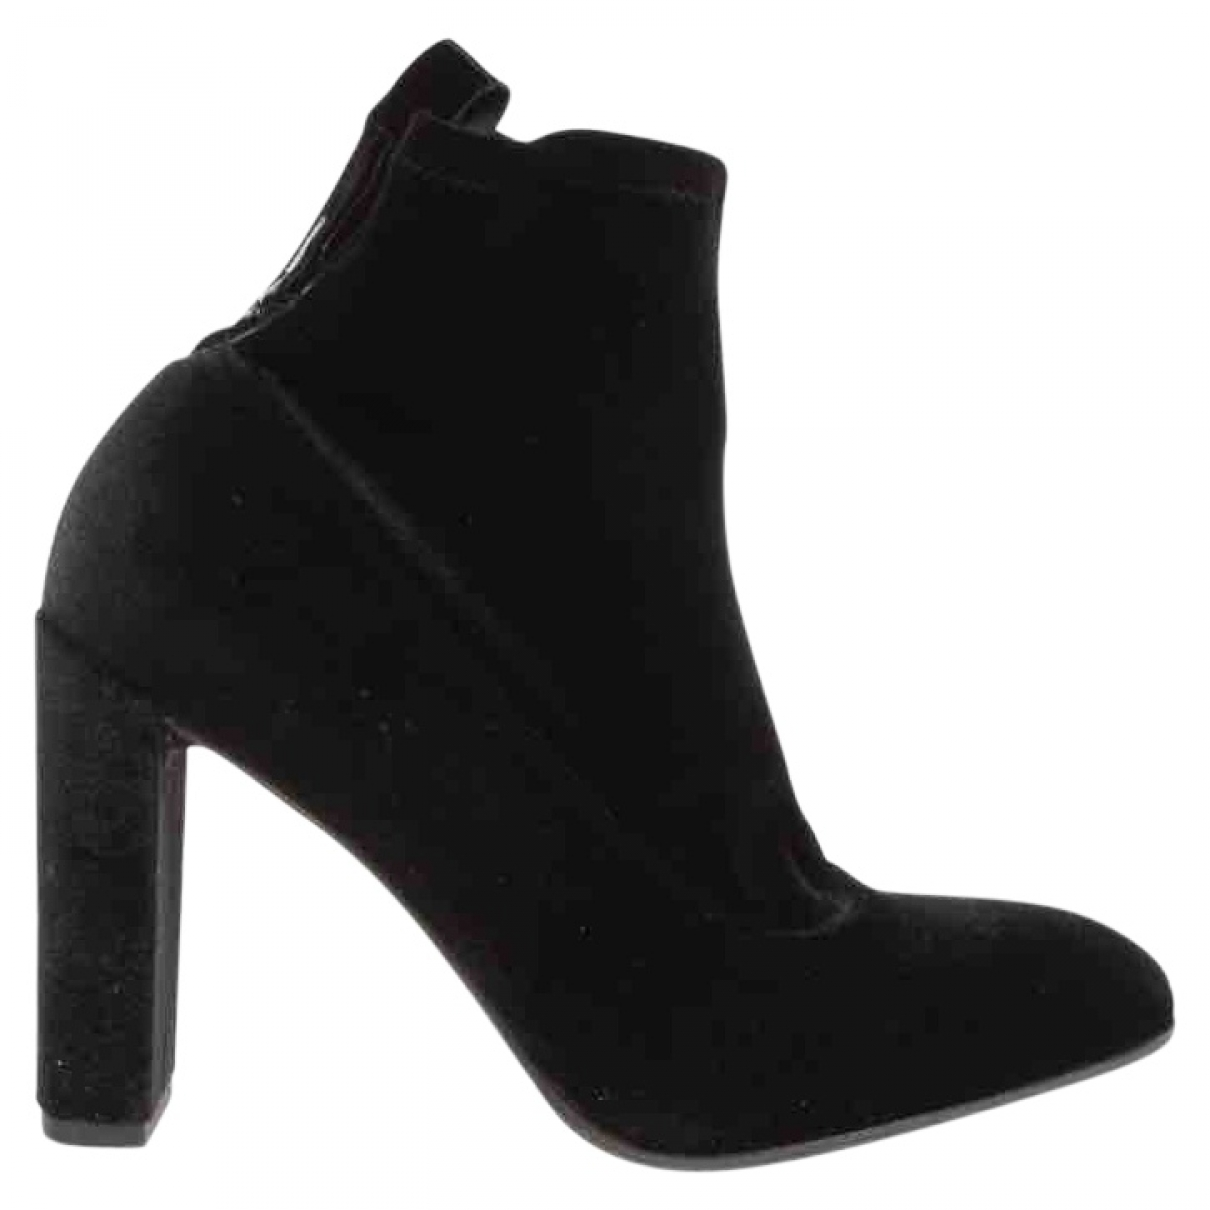 Aeyde \N Black Leather Ankle boots for Women 38.5 EU